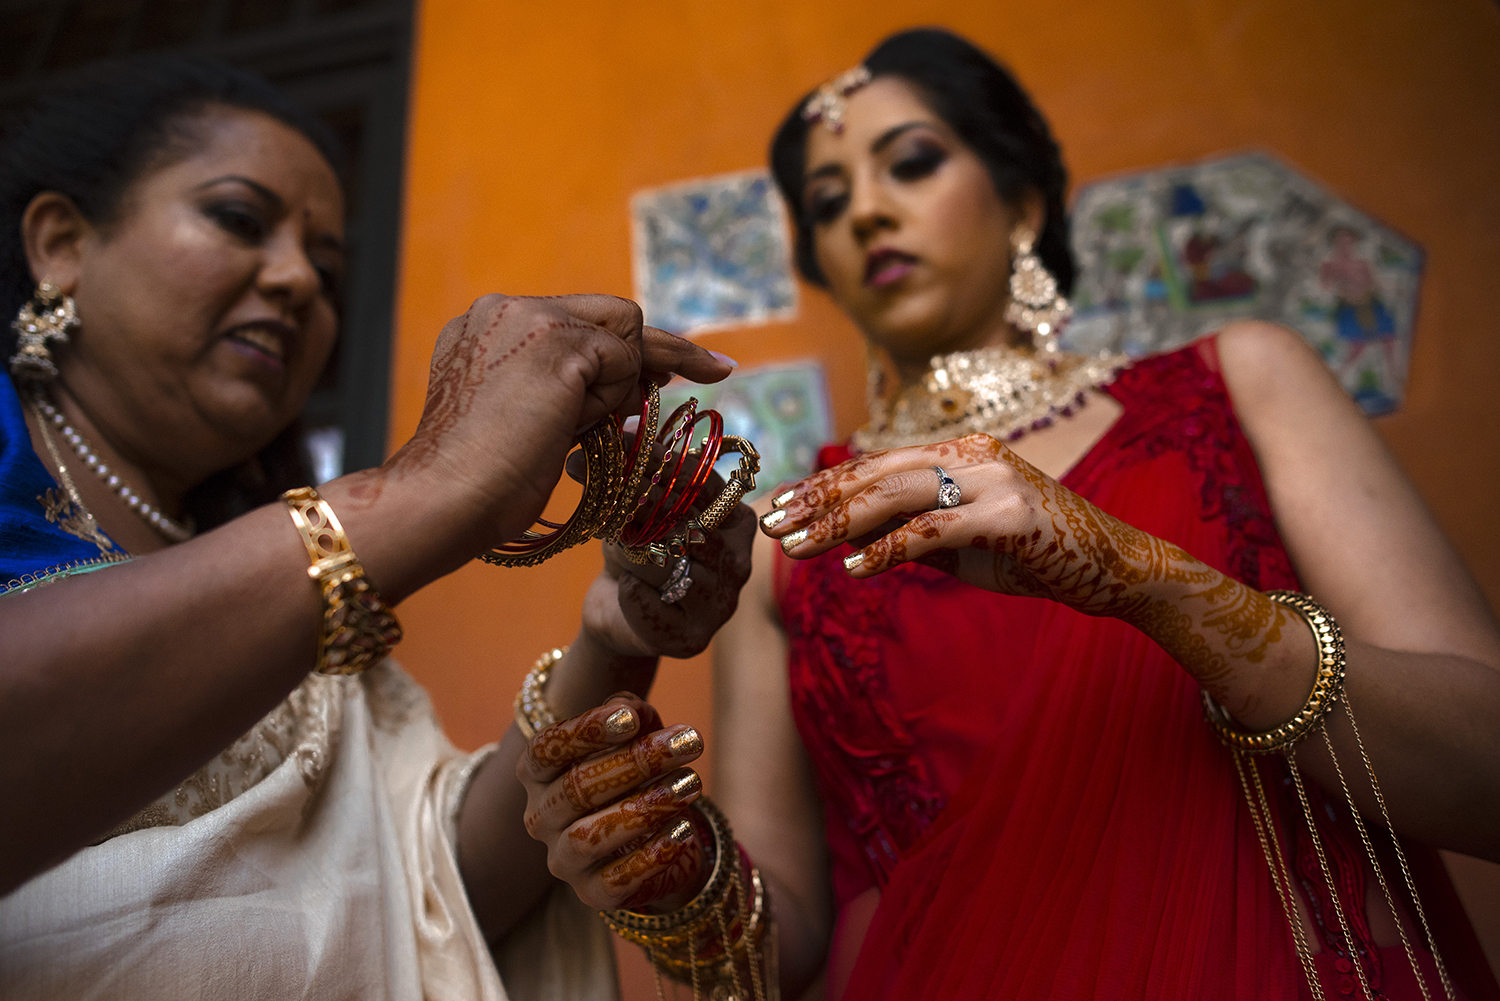 indian_wedding_san_miguel_de_allende_chio_garcia_photographer (34).jpg